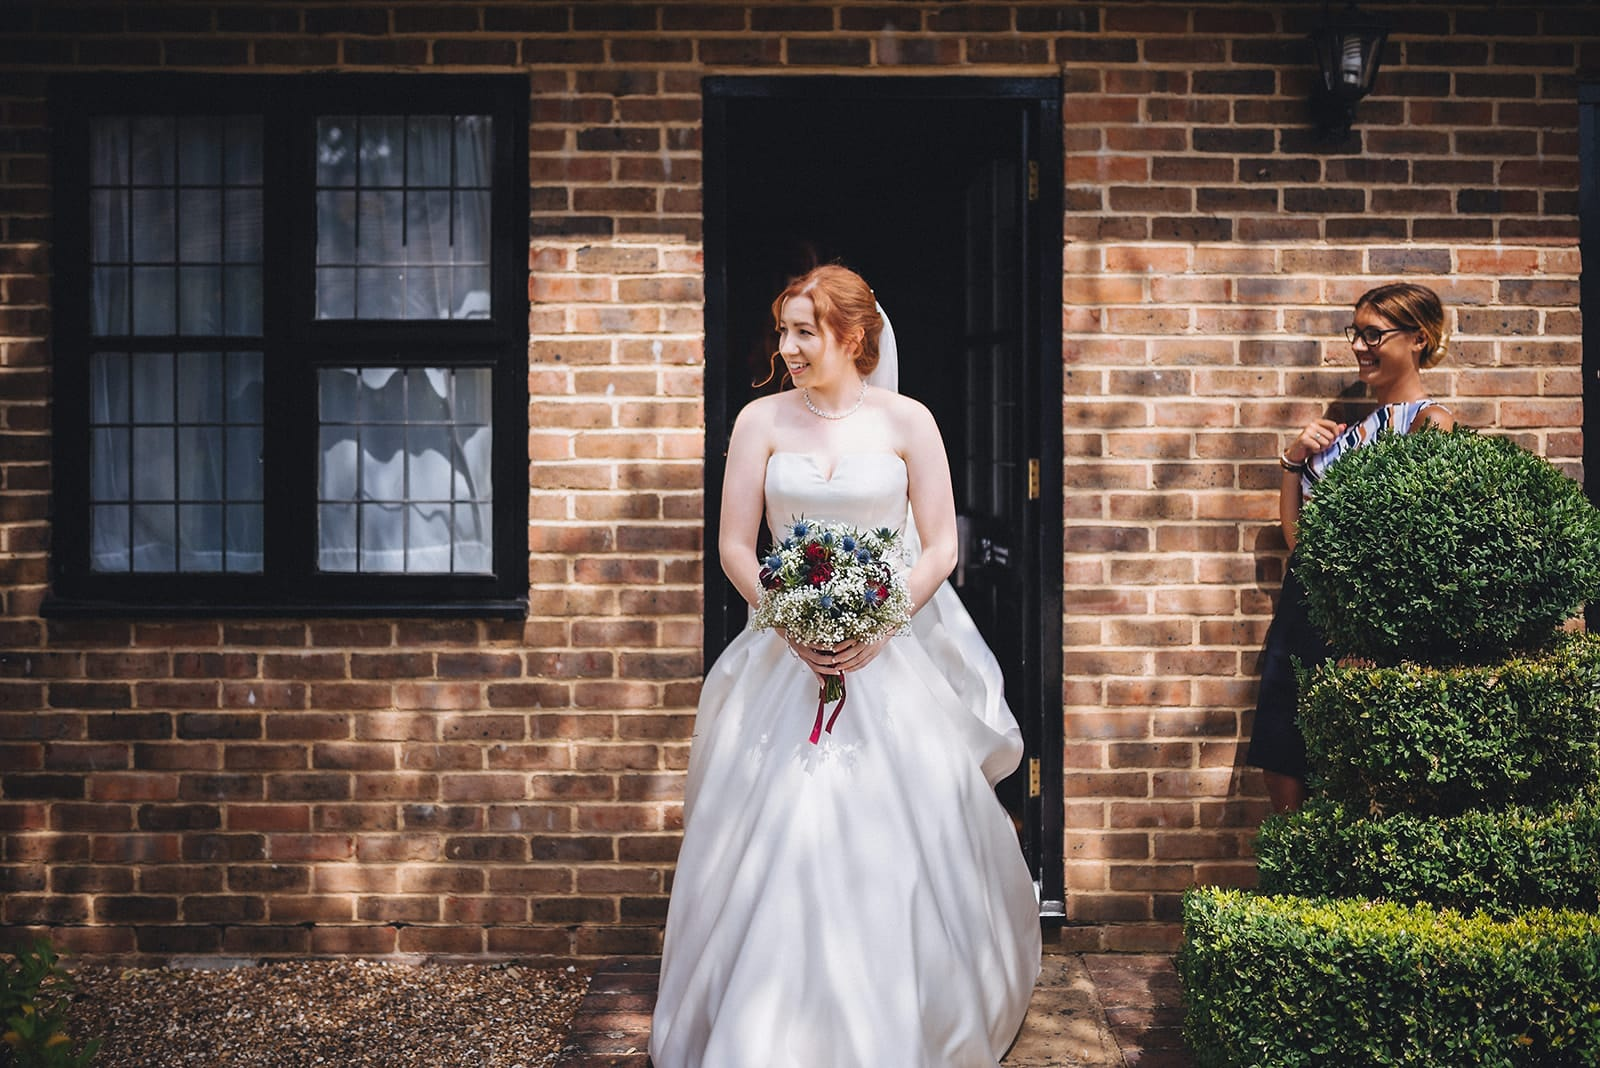 Bride walks out of her room towards her wedding ceremony at the Hever Hotel